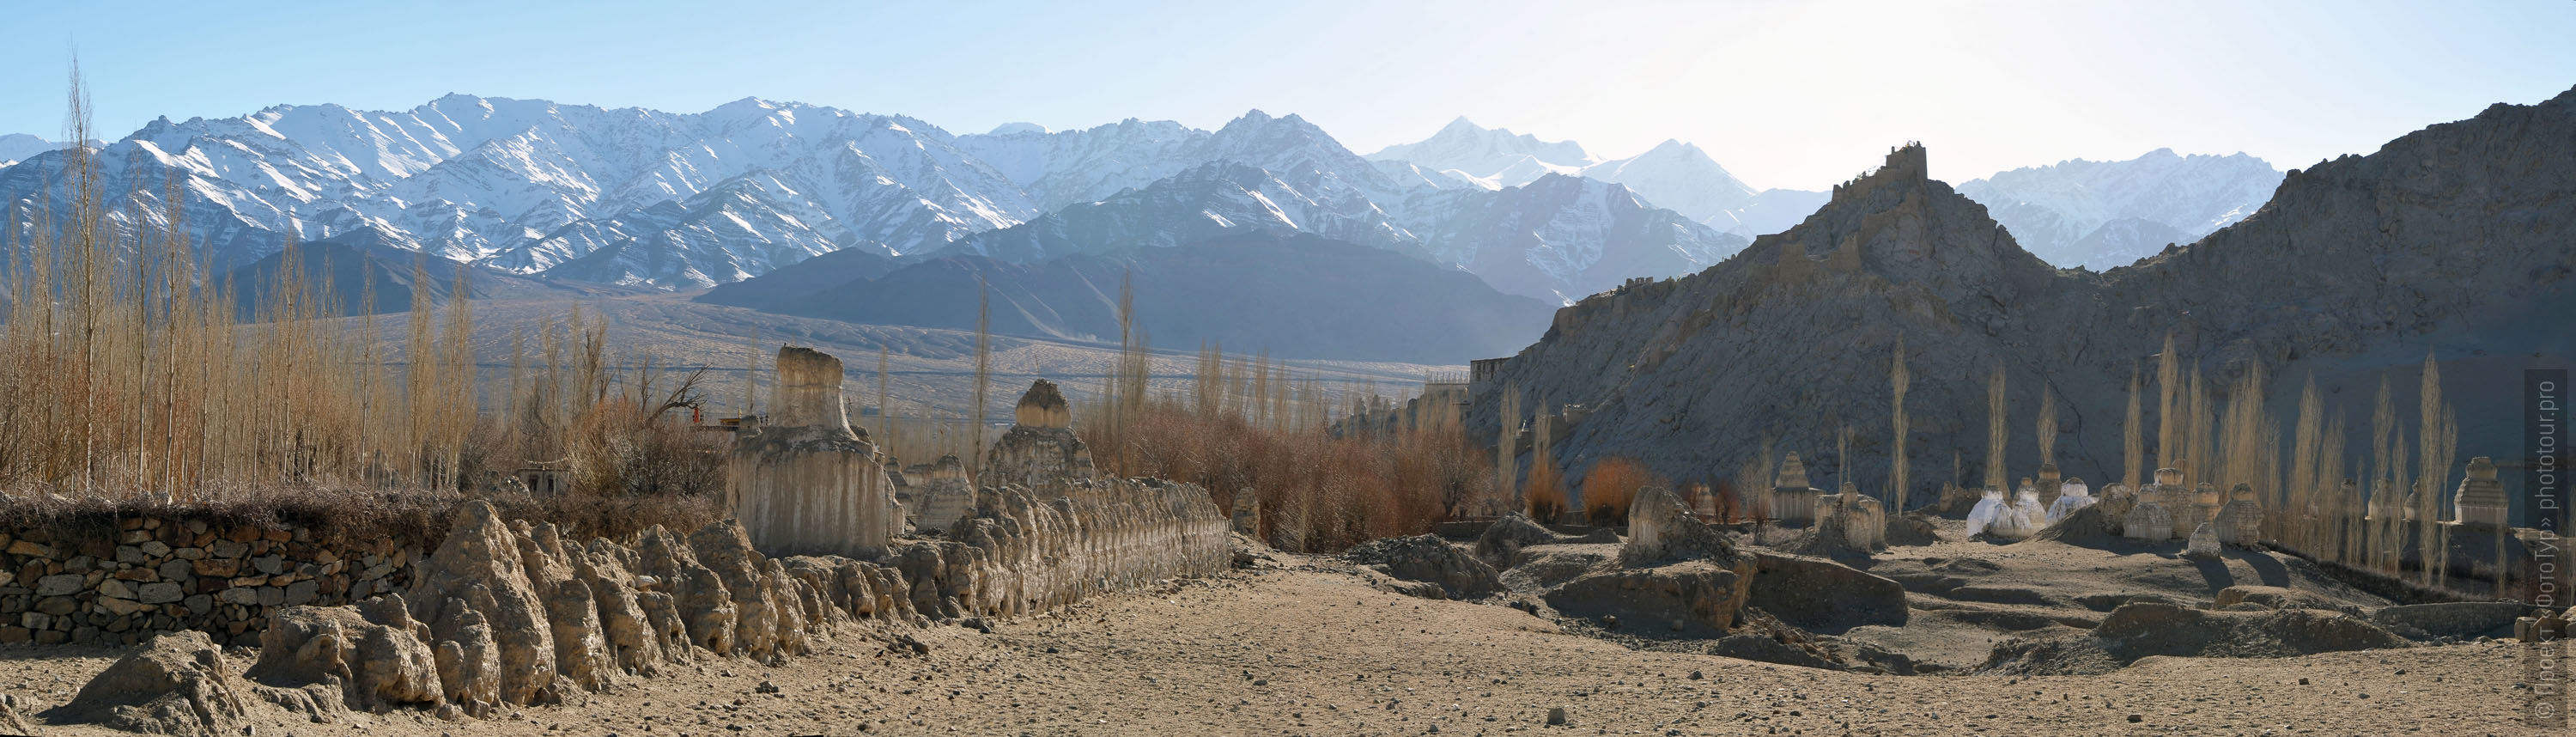 Ladakh landscape. Photo tour to Tibet for the Winter Mysteries in Ladakh, Stok and Matho monasteries, 01.03. - 03/10/2020